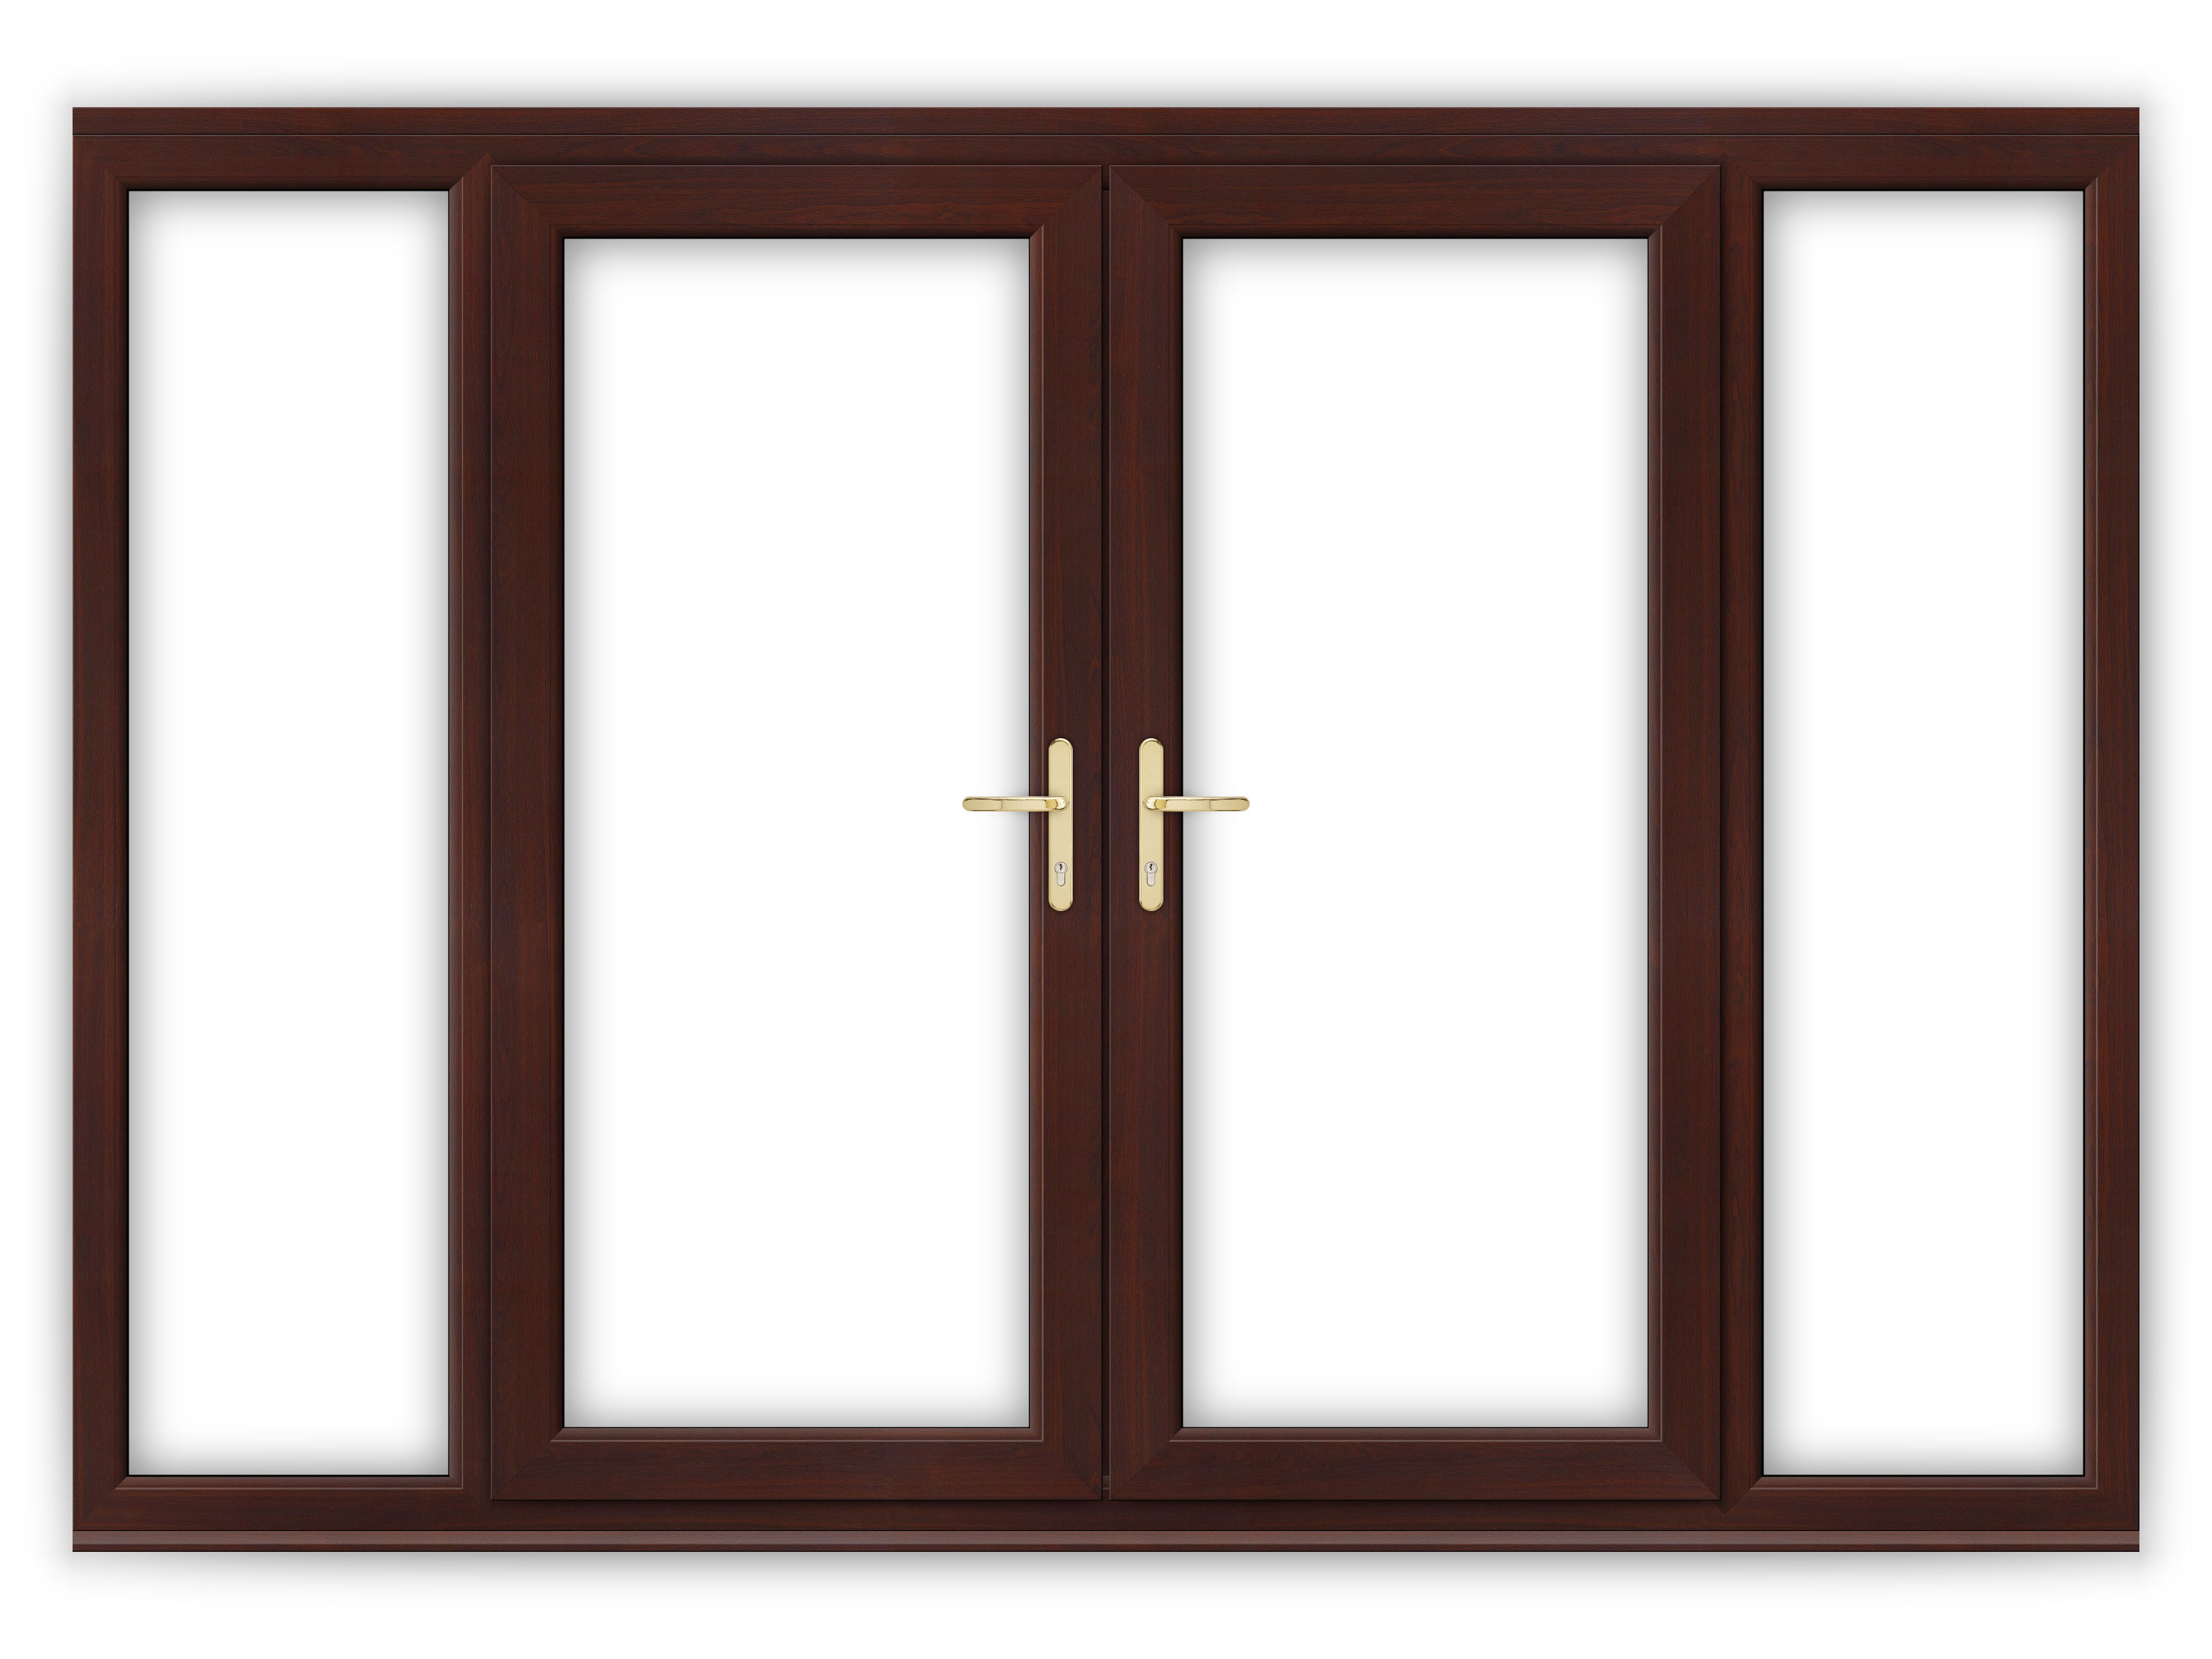 6ft rosewood upvc french doors with wide side panels - How wide are exterior french doors ...